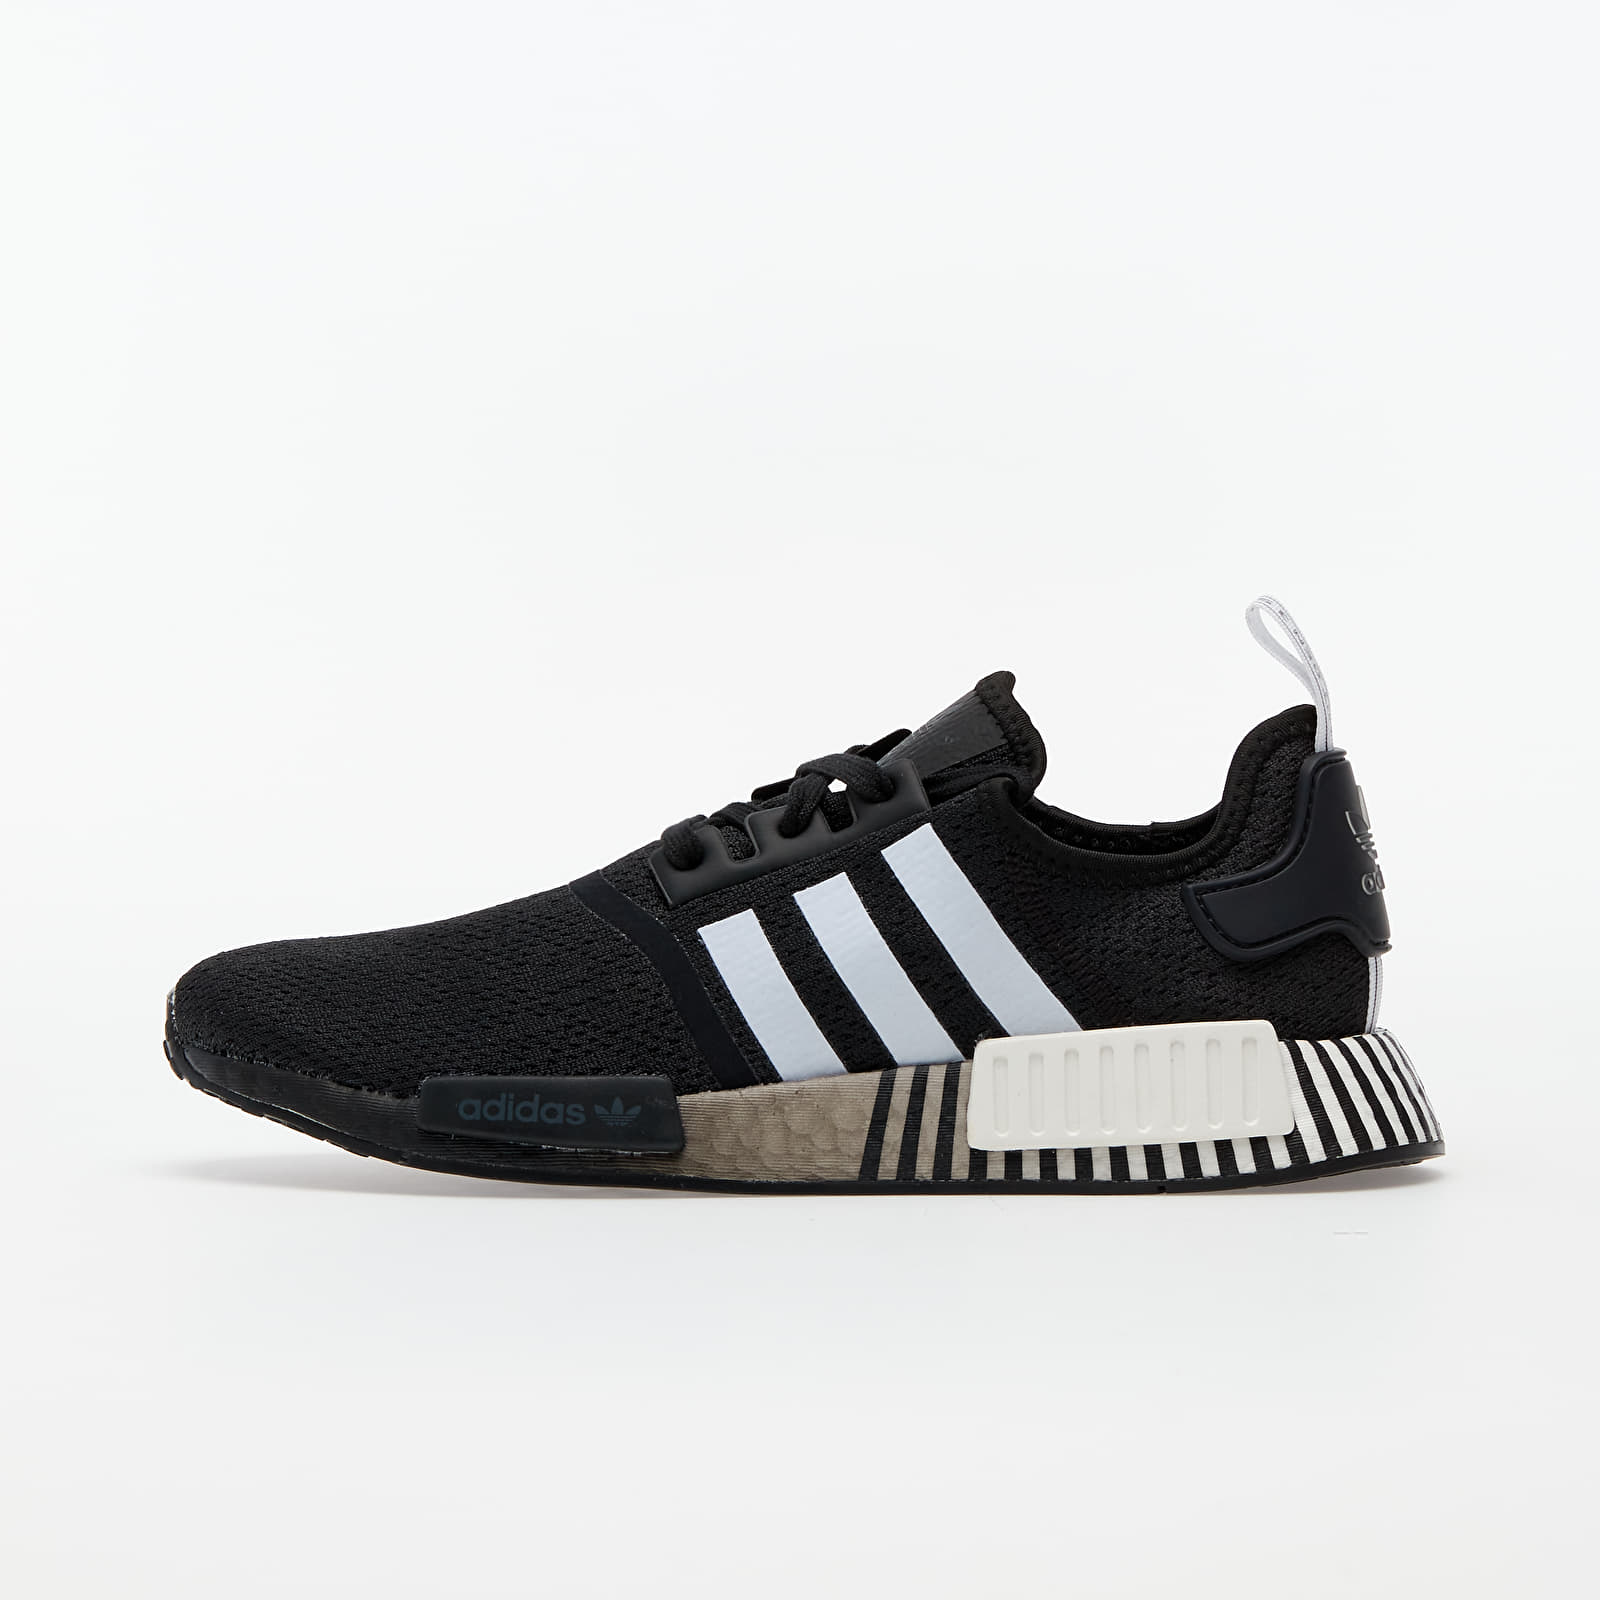 adidas NMD_R1 Core Black/ Ftw White/ Core Black EUR 40